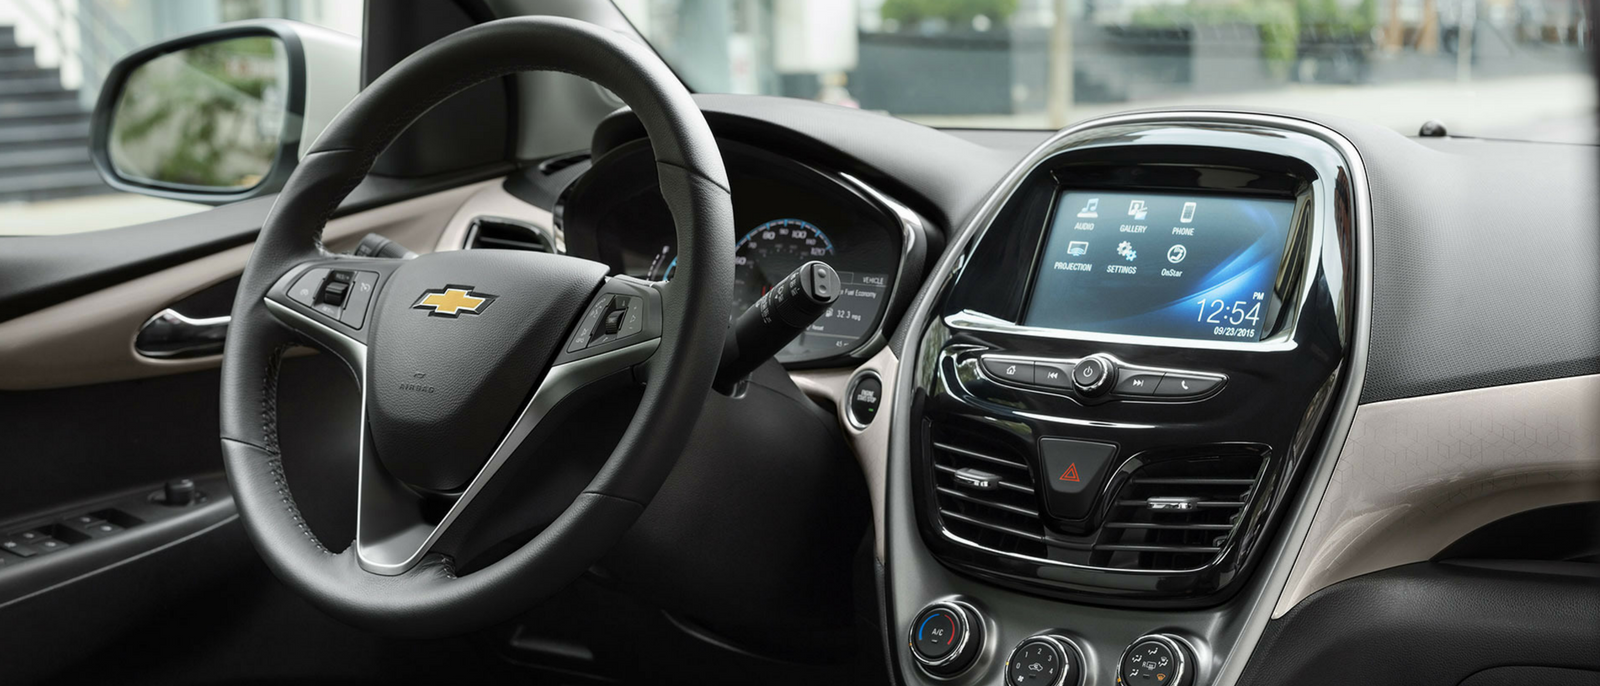 2017 Chevrolet Spark Info | Price, Lineup, Safety Features ...